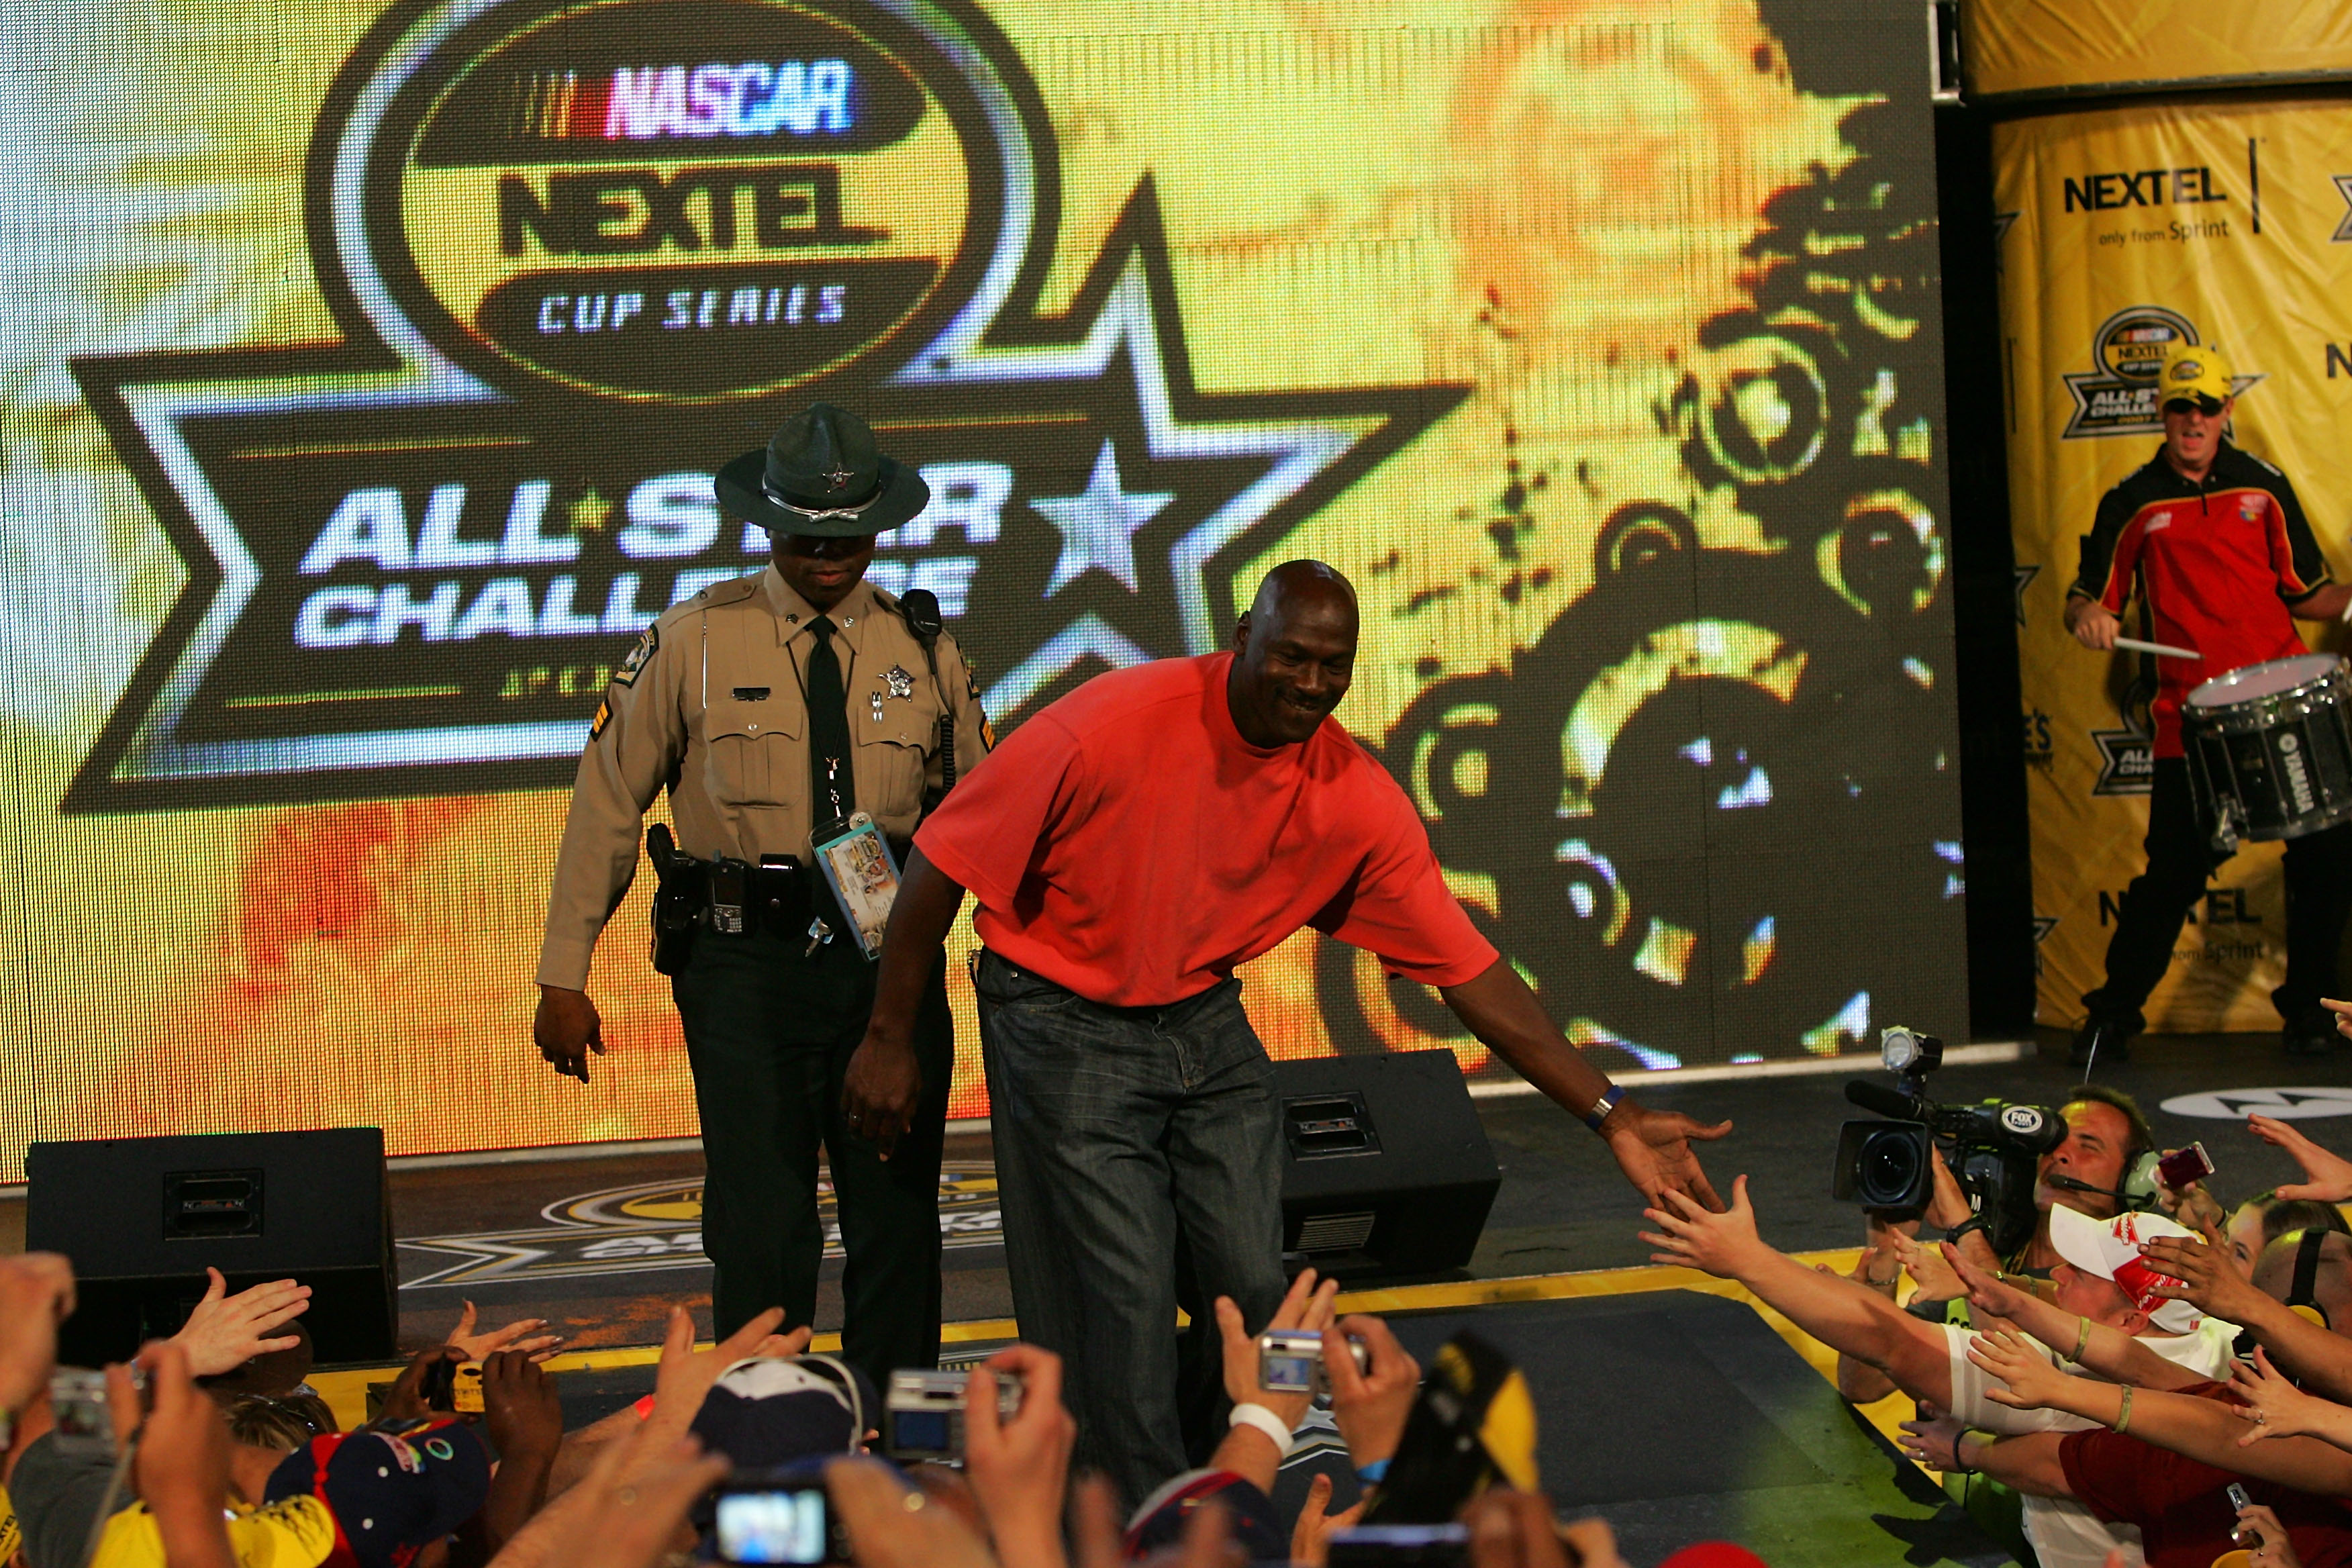 Former NBA player Michael Jordan is introduced, prior to the NASCAR Nextel All-Star Challenge on May 19, 2007 at Lowe's Motor Speedway in Concord, North Carolina.